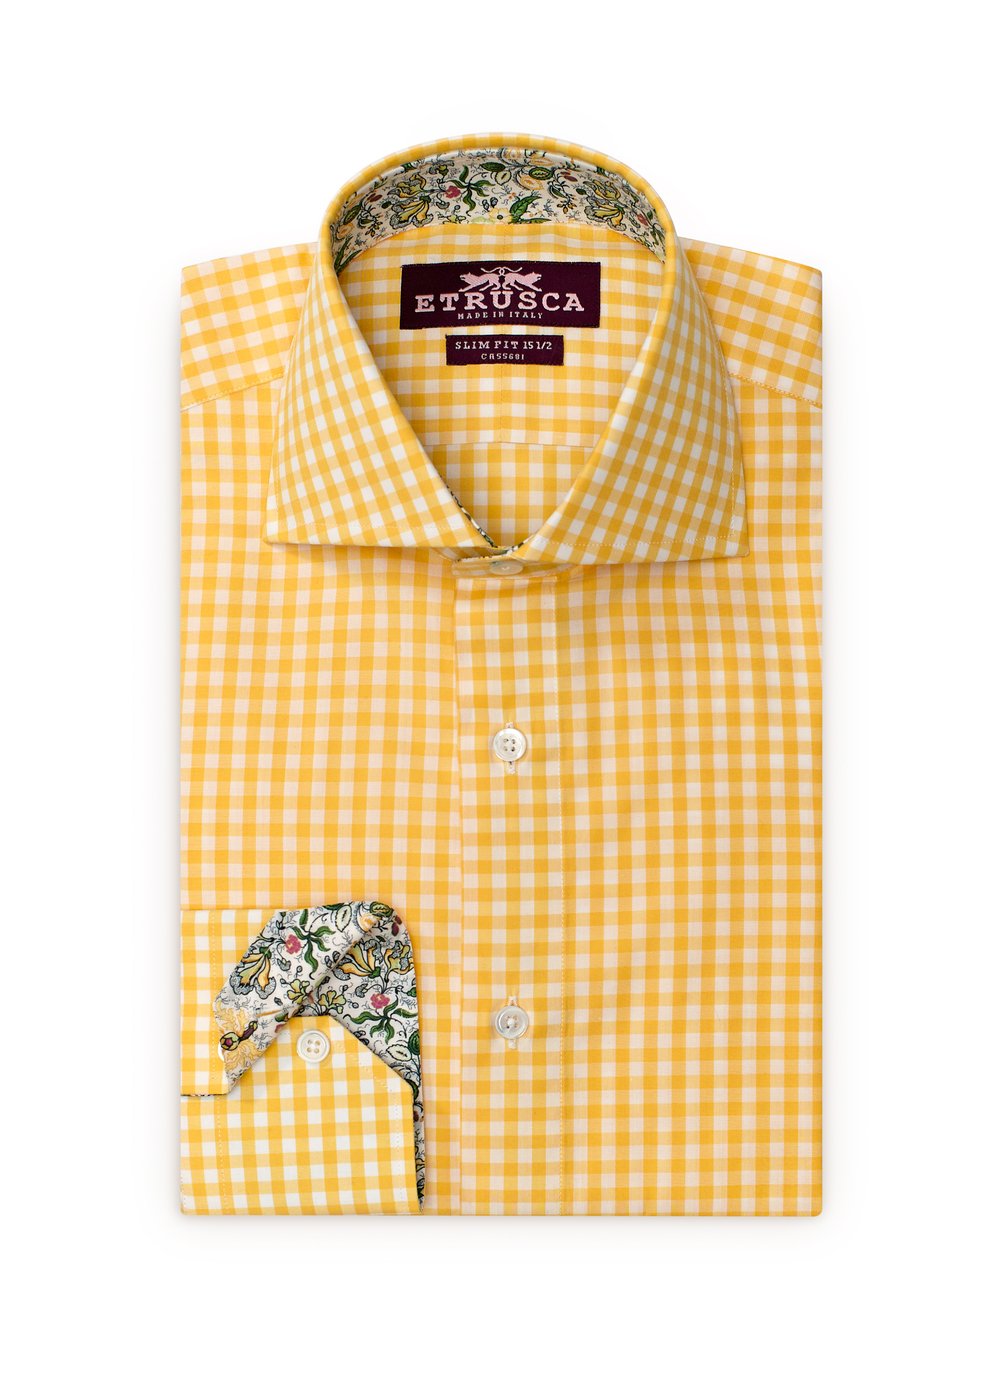 Etrusca-Collezione-Tre-Avvocato-Yellow-Gingham-Floral-Contrast-Folded-001-HR.jpg